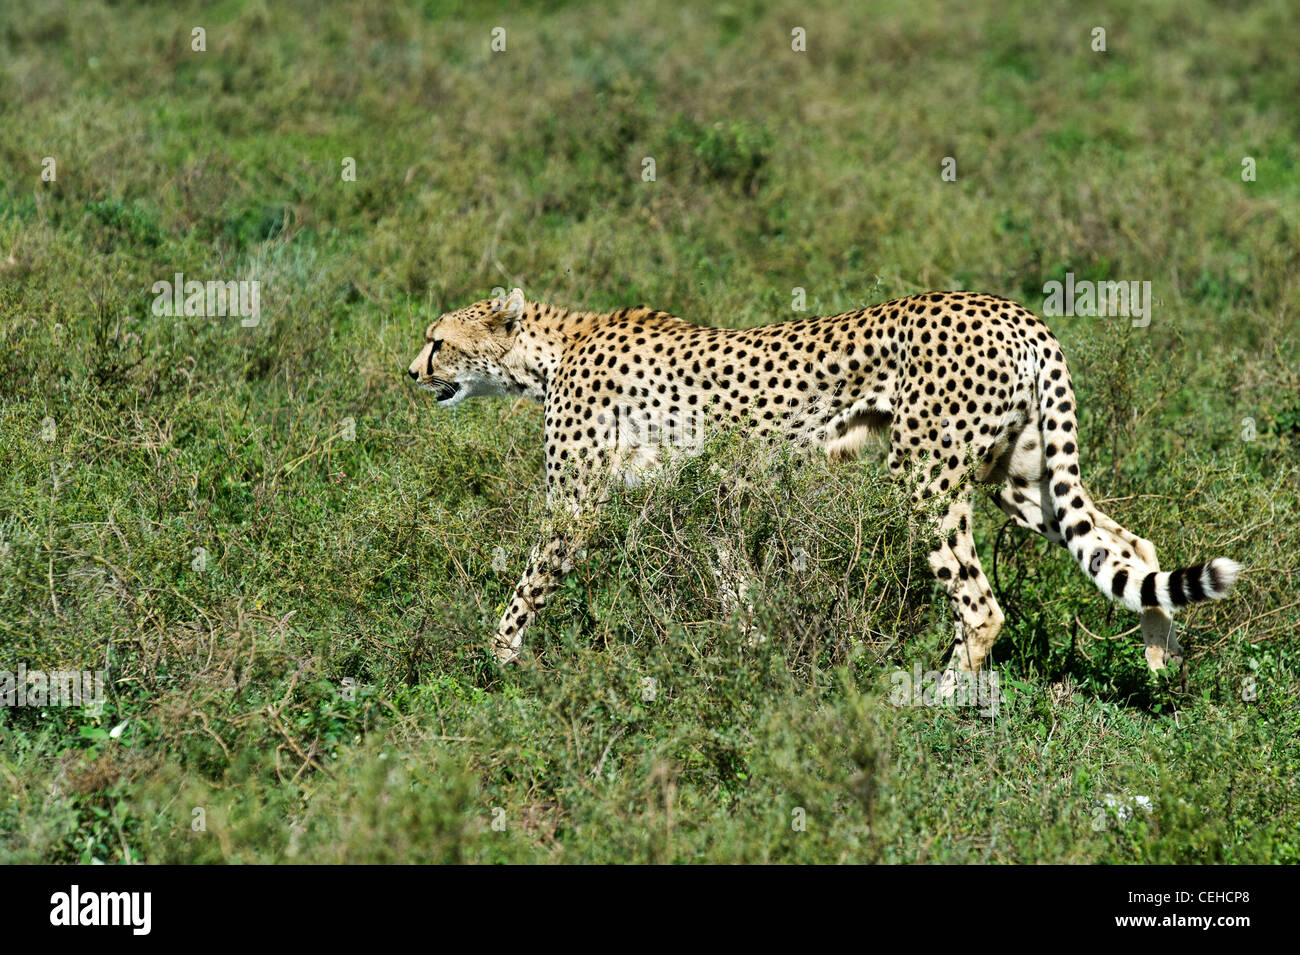 Cheetah (Acinonyx jubatus) resting after a hunt on the plains at Ndutu in Ngorongoro Conservation Area - Tanzania - Stock Image